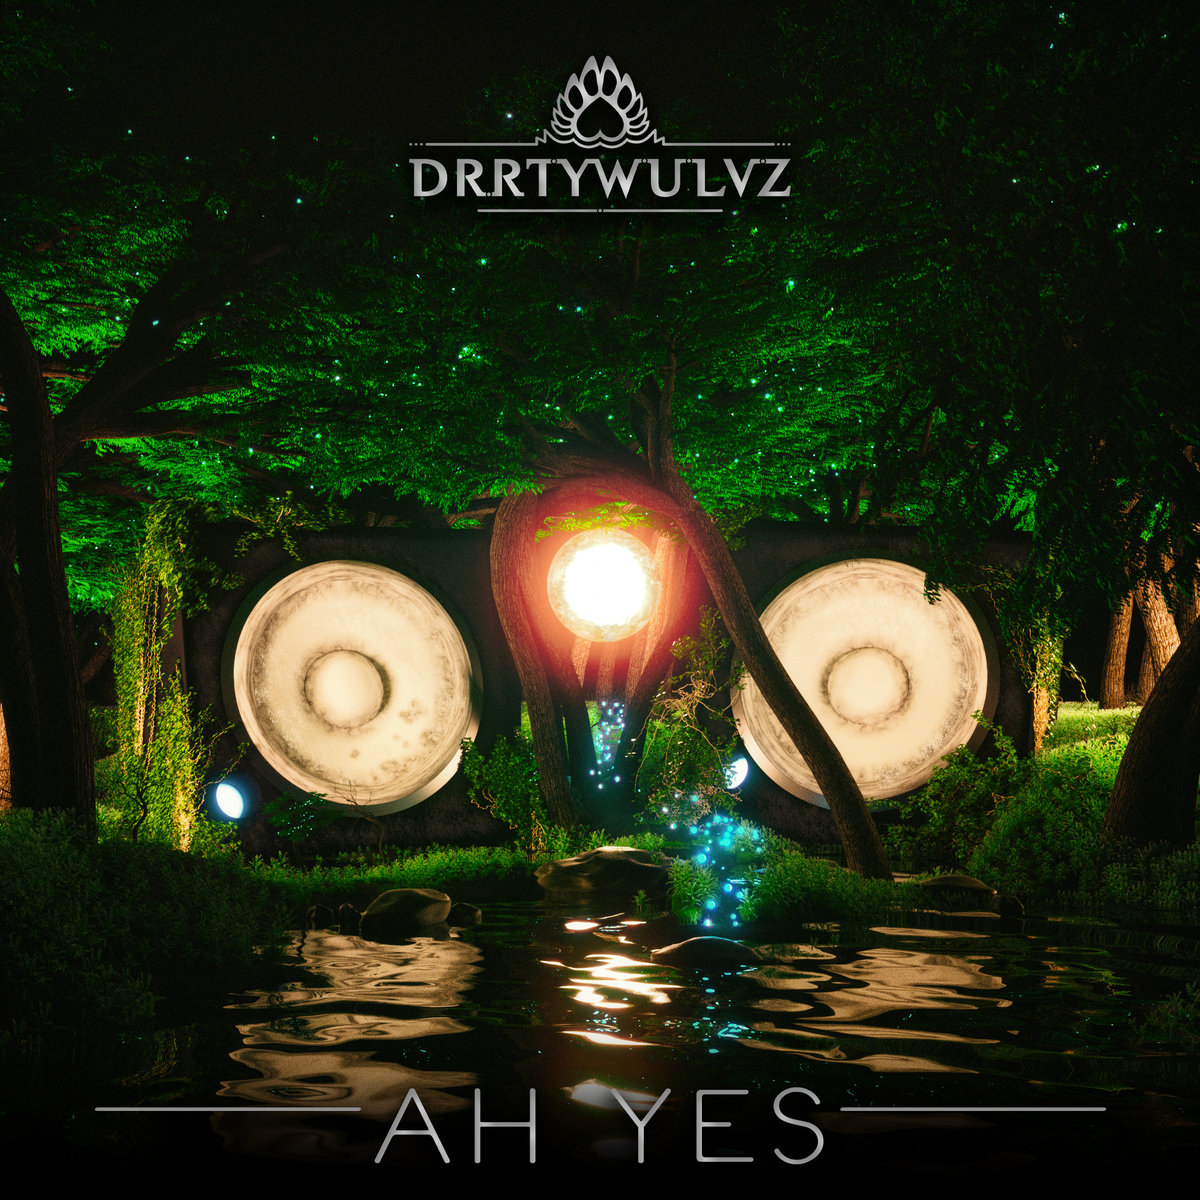 DRRTYWULVZ - All Them @ 'Ah Yes' album (bass, drrtywulvz)